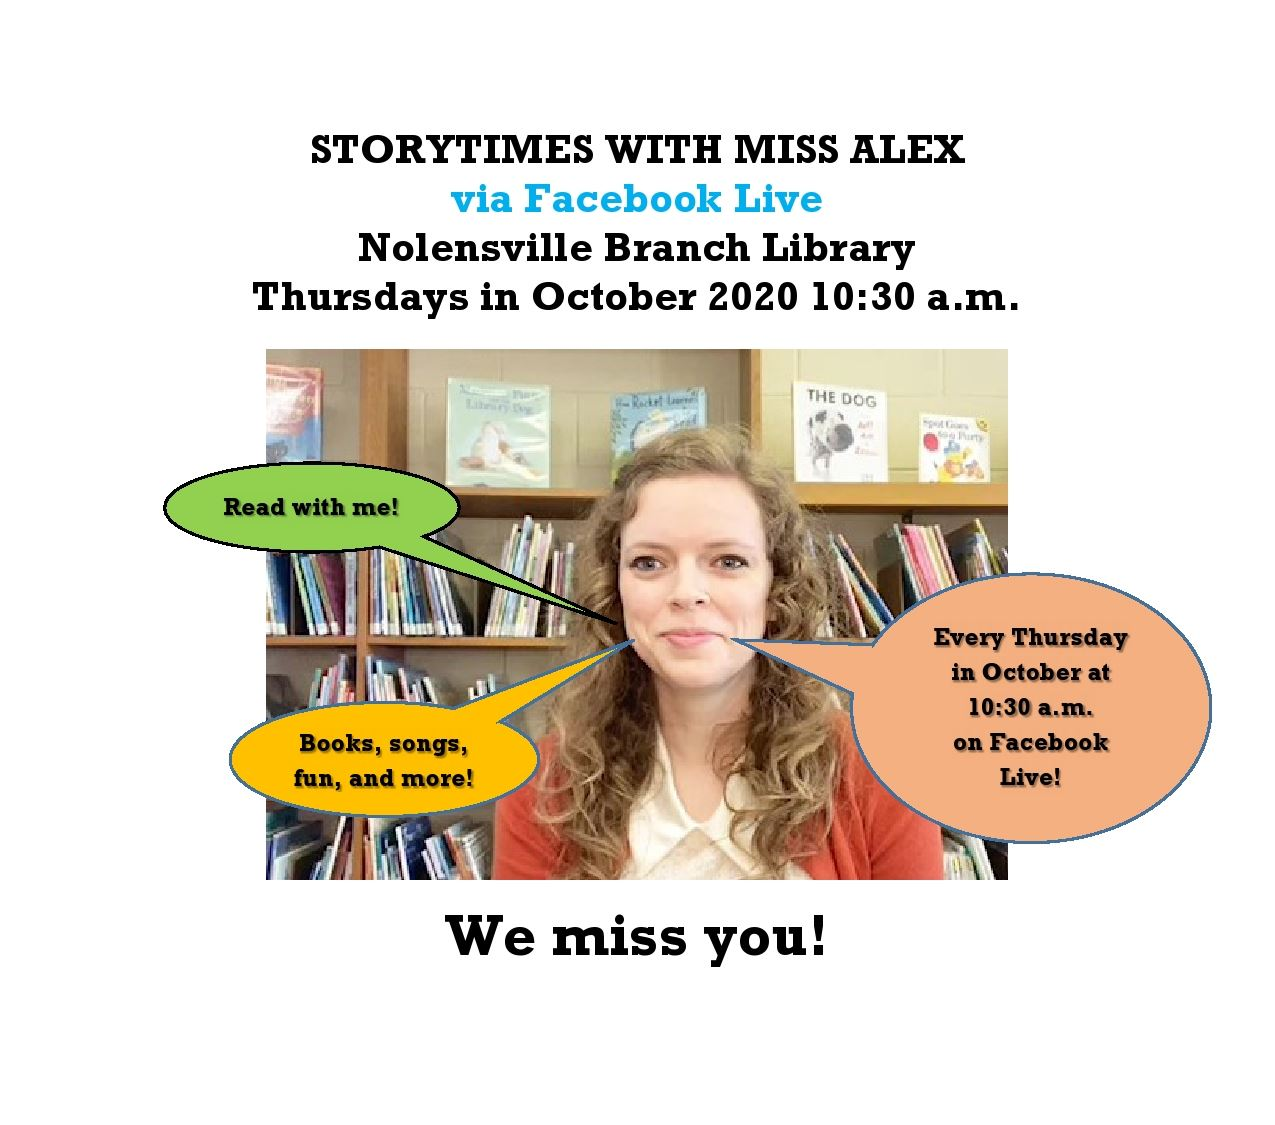 Nolensville Library Facebook Live Storytimes with Miss Alex October 2020